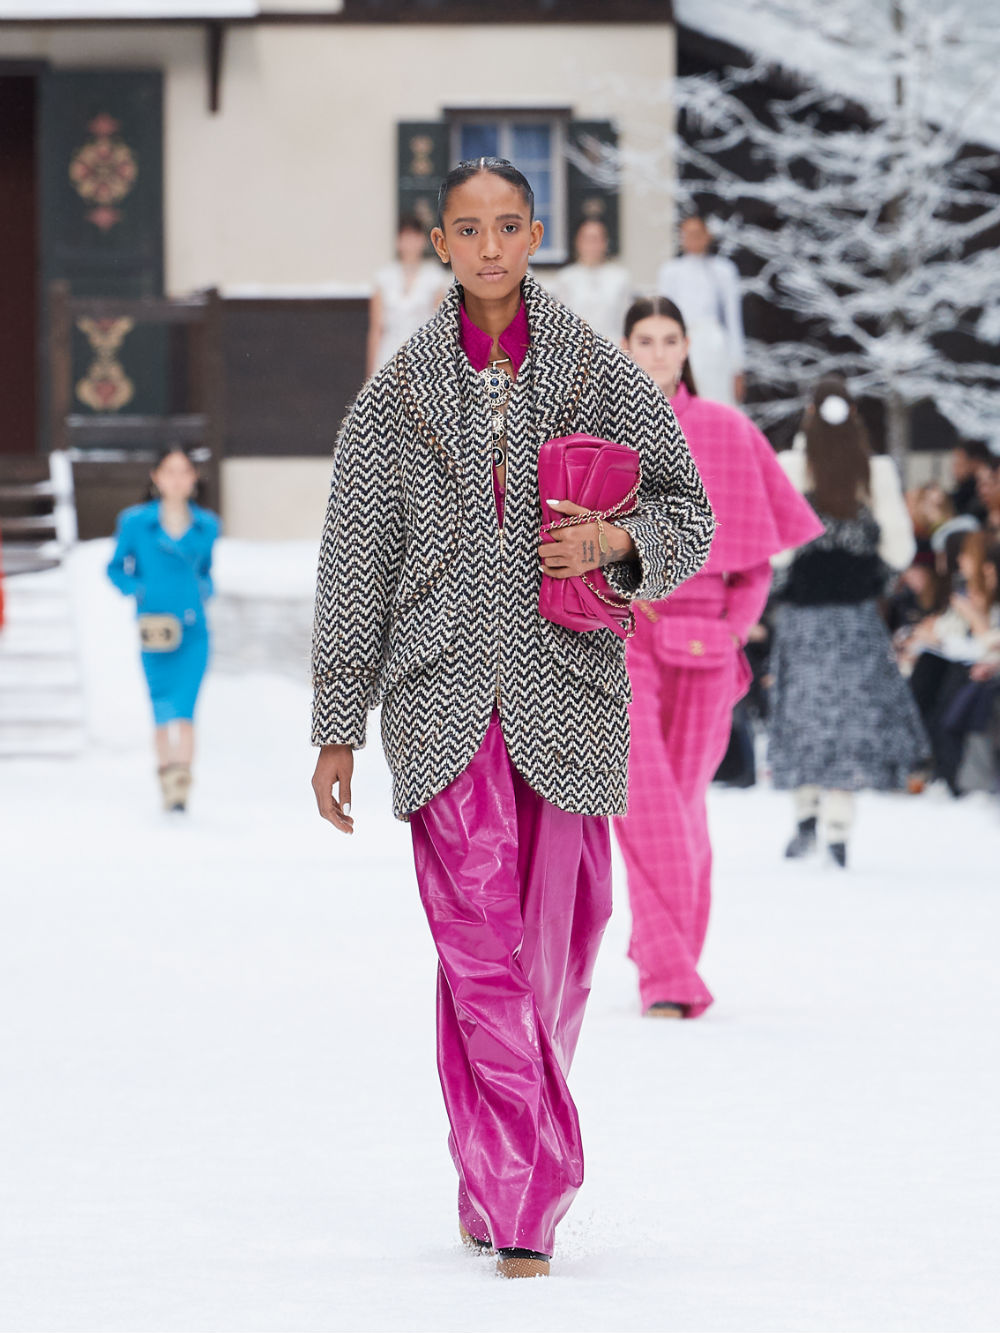 FALL-WINTER 201920 READY-TO-WEAR COLLECTION (31)